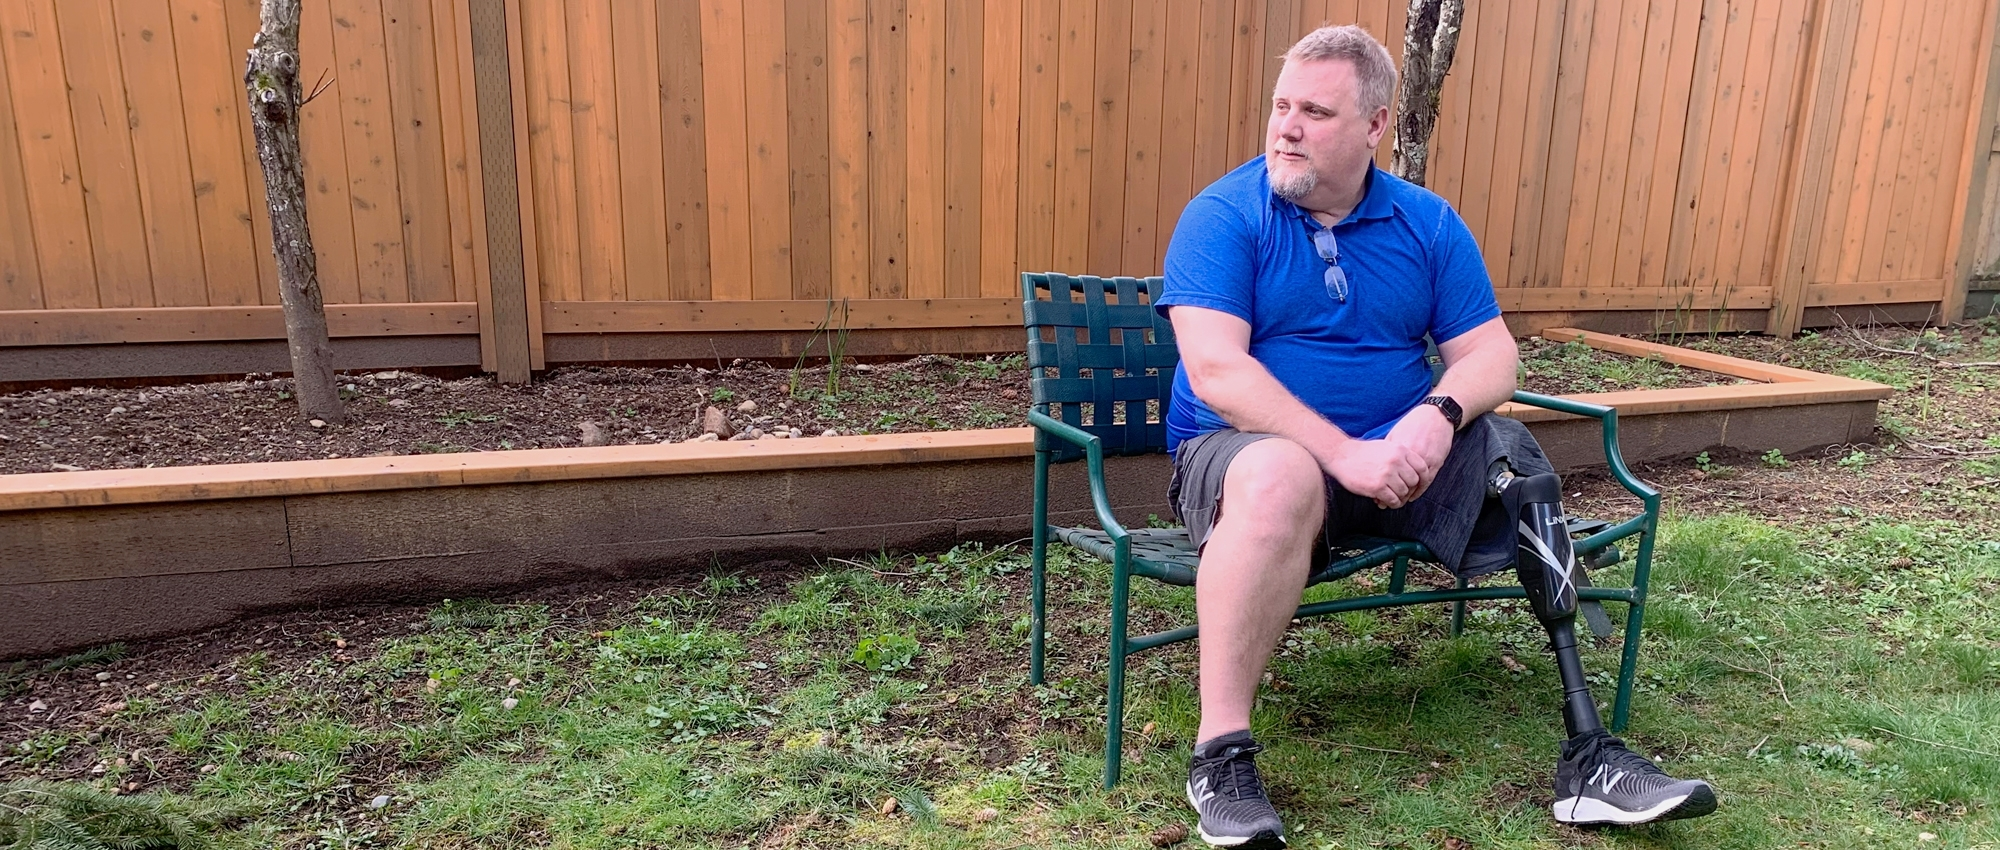 A man with a prosthetic leg sits on a bench outdoors.